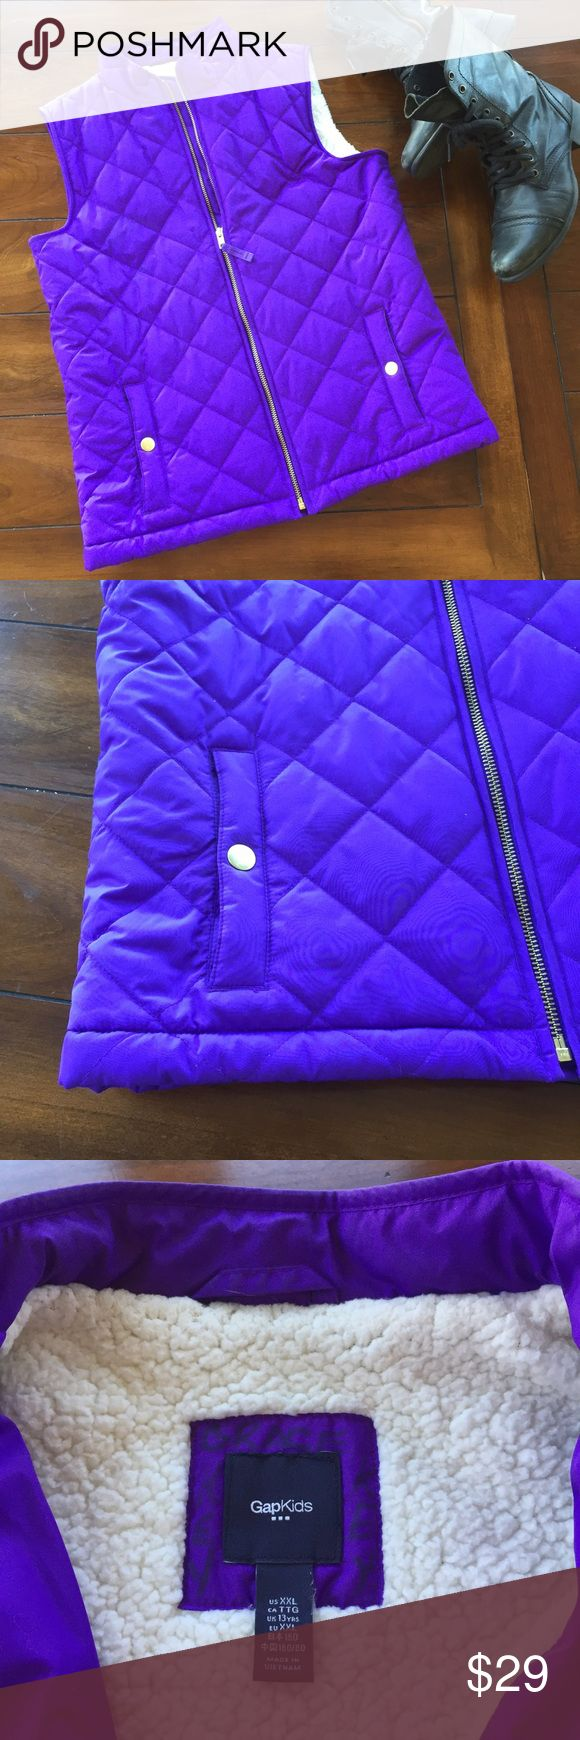 GAP GIRL'S DOWN WITH SHEARLING VEST EUC XXL GAP girl's vest that is so adorable. Purple with gold zip pockets. Zip closure with faux shearling lining. It's in EUC. Worn a couple of times. Looks like new. XXL (14/16) this is an XXL  not an XL. Posh has an error. When I edit it clicks XXL but it posts as XL I have notified support. It would easily fit a ladies Small as well GAP Jackets & Coats Vests